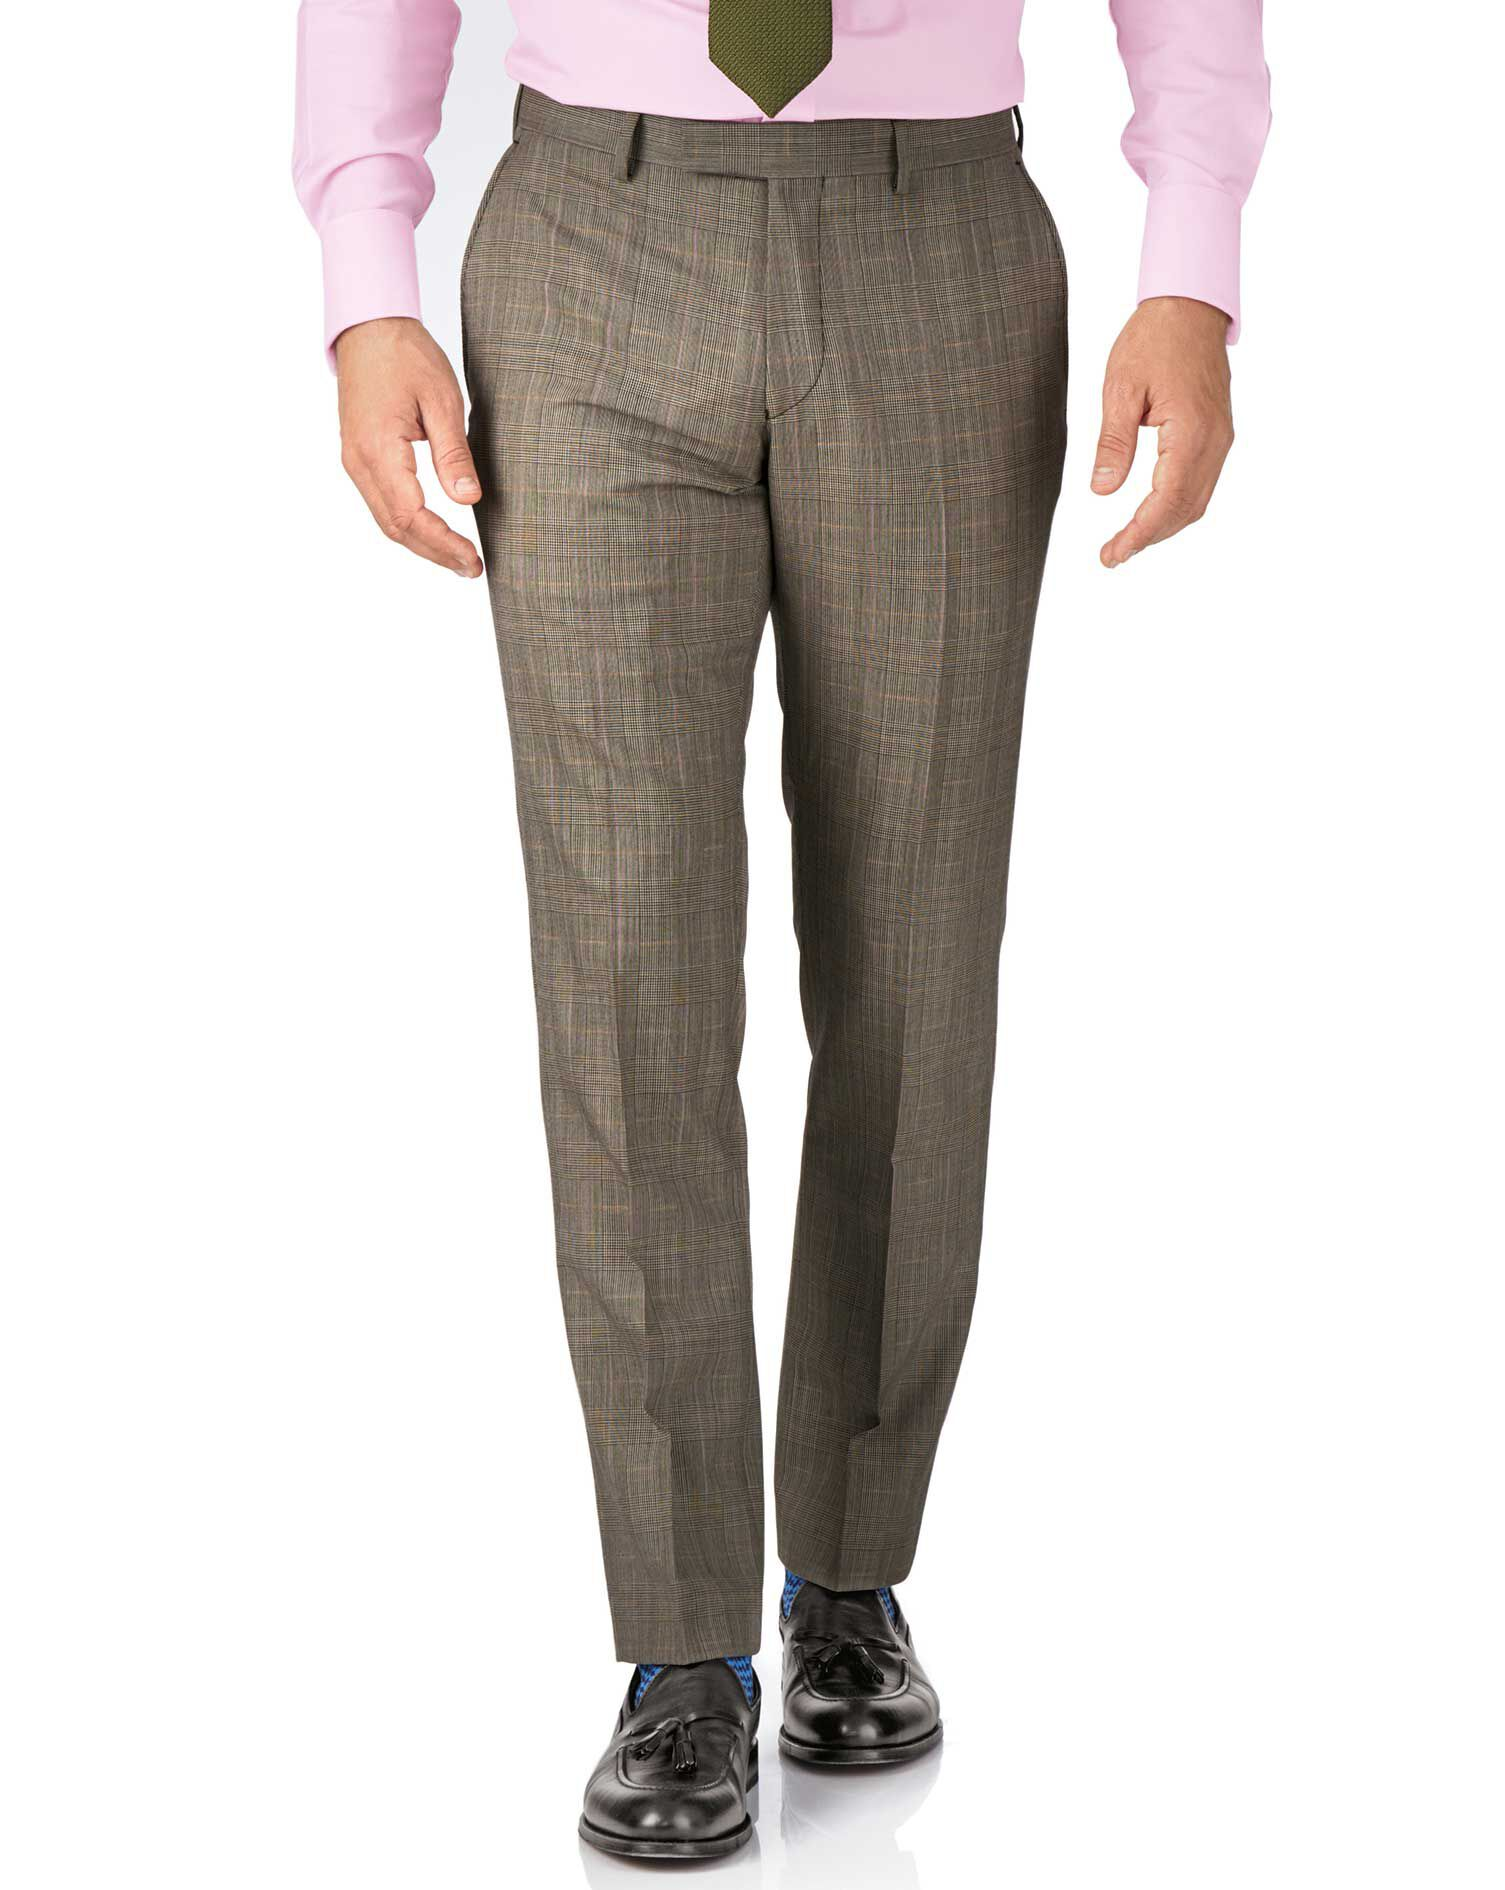 Beige Slim Fit British Panama Luxury Check Suit Trouser Size W38 L32 by Charles Tyrwhitt